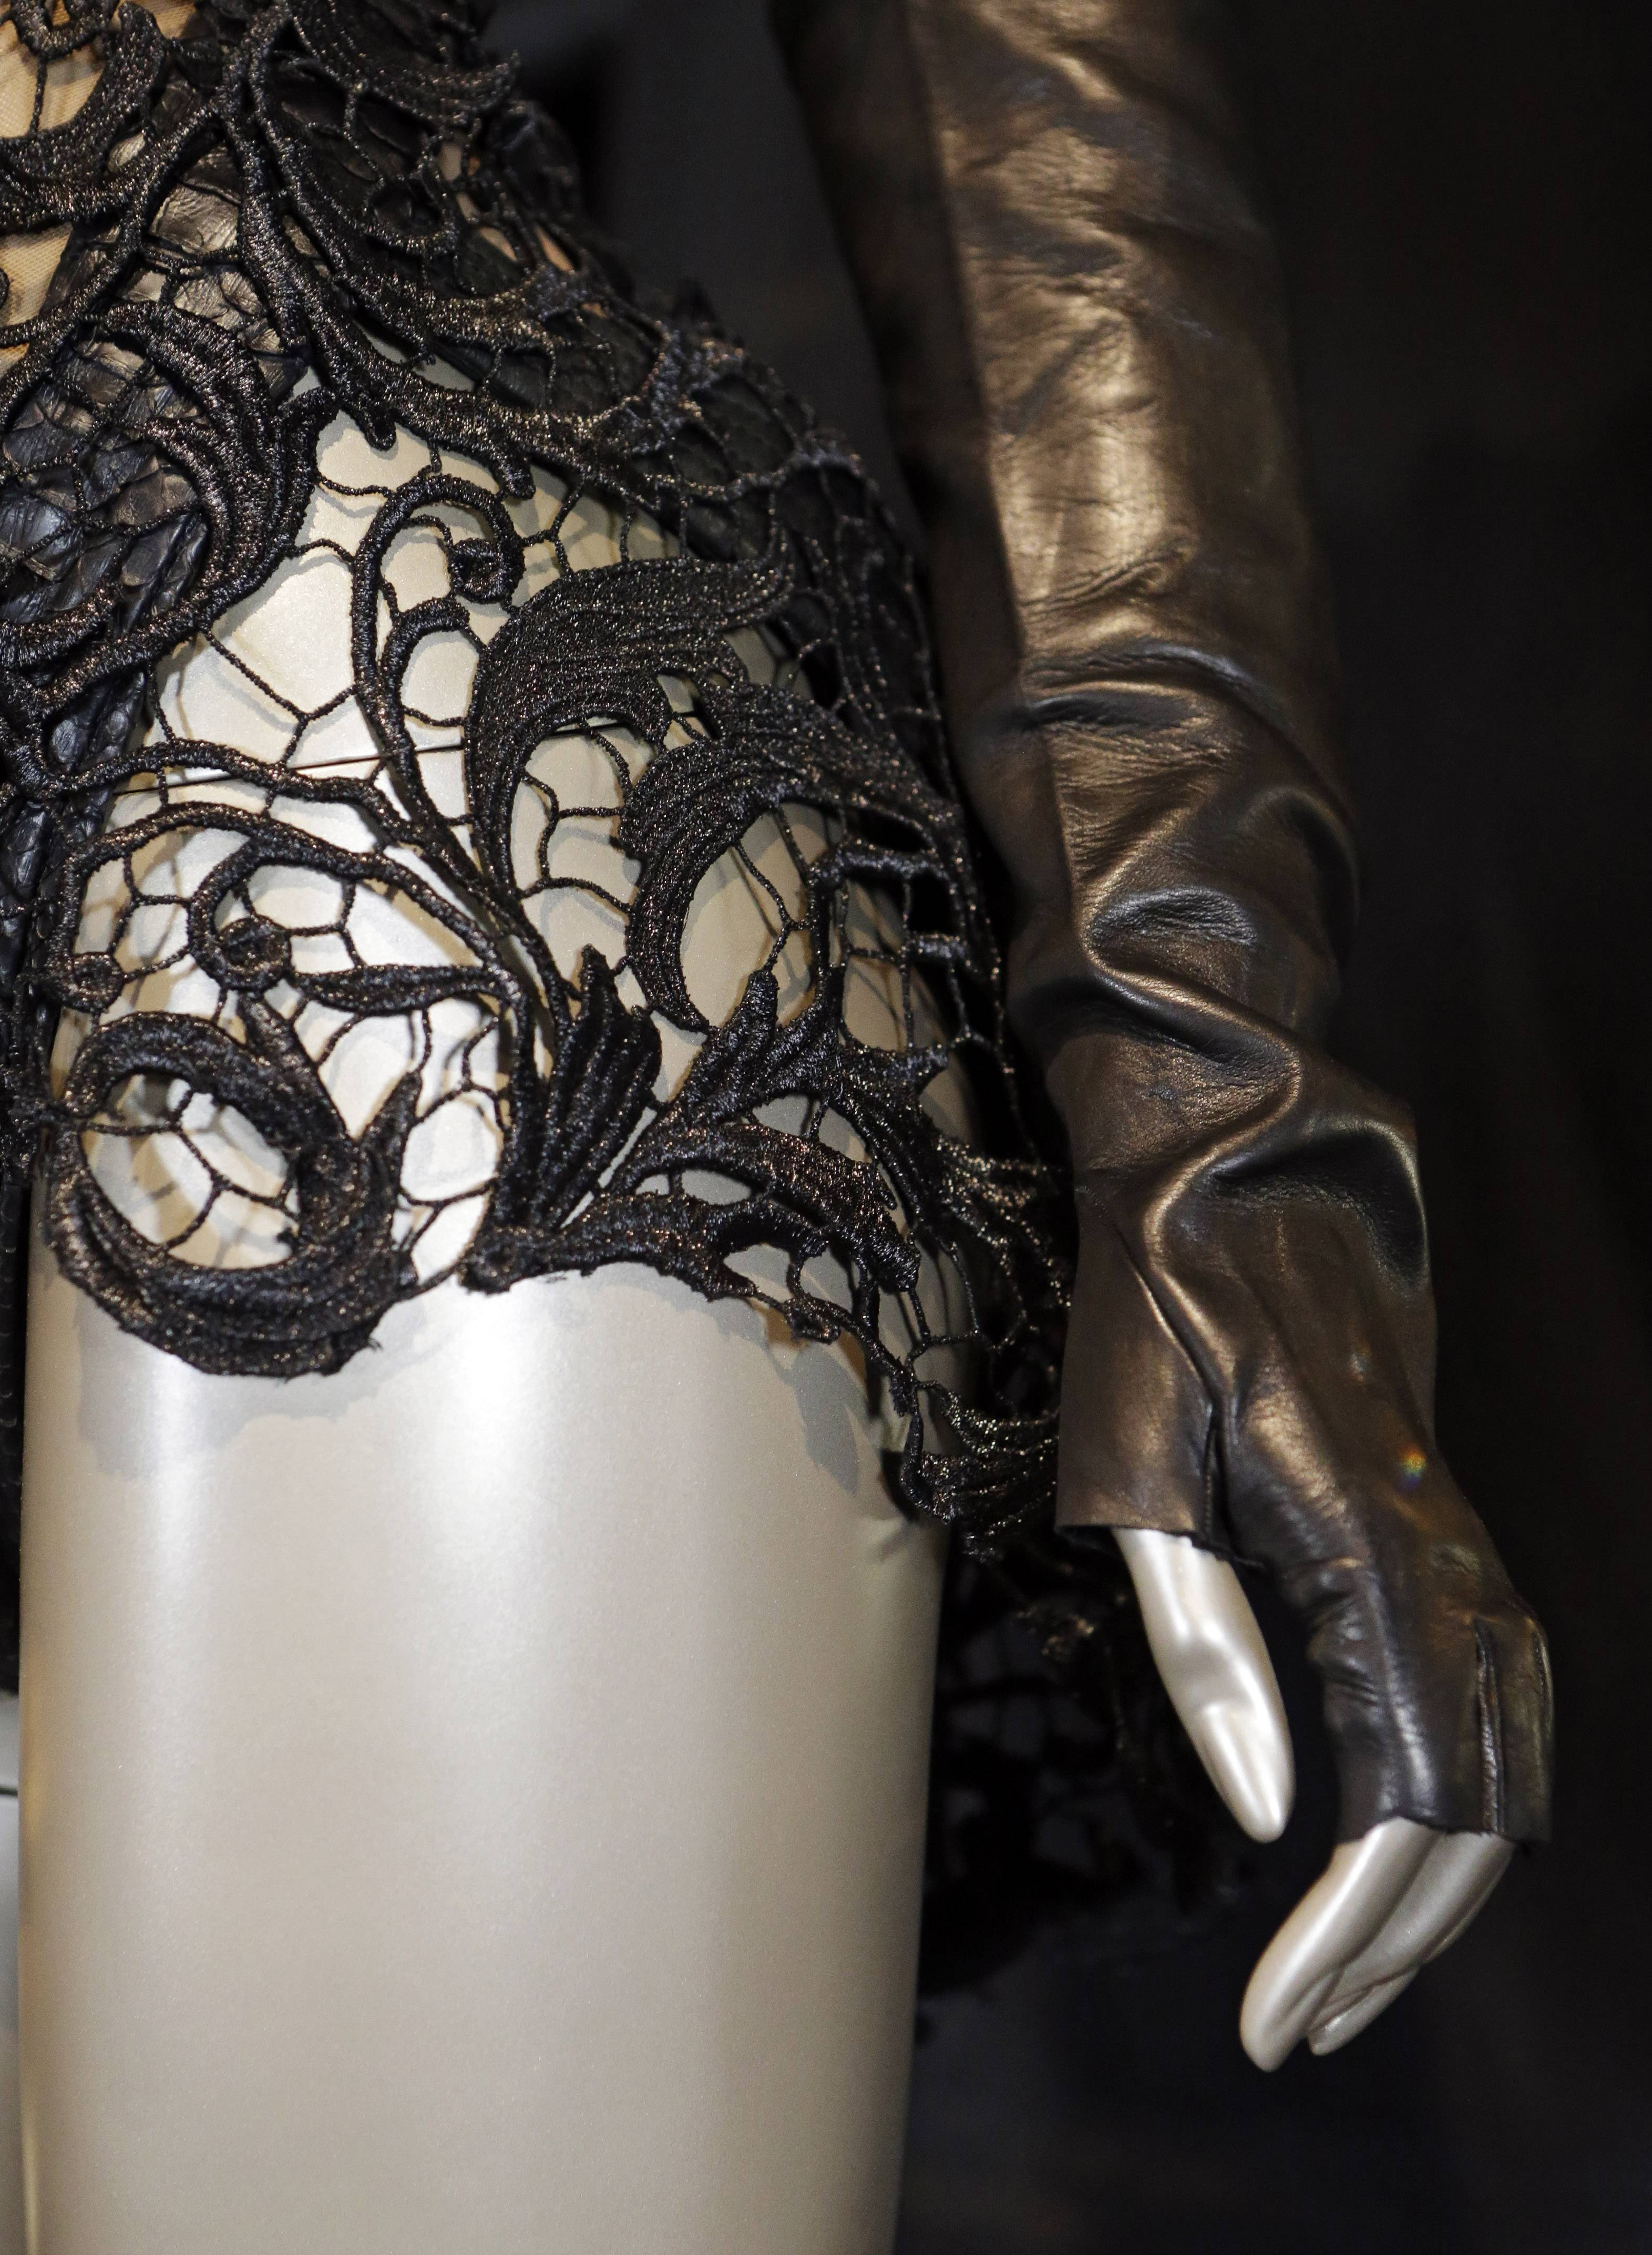 A detail from Beyonce's 2013 Super Bowl performance outfit is displayed in a new exhibit at the Rock and Roll Hall of Fame in Cleveland.